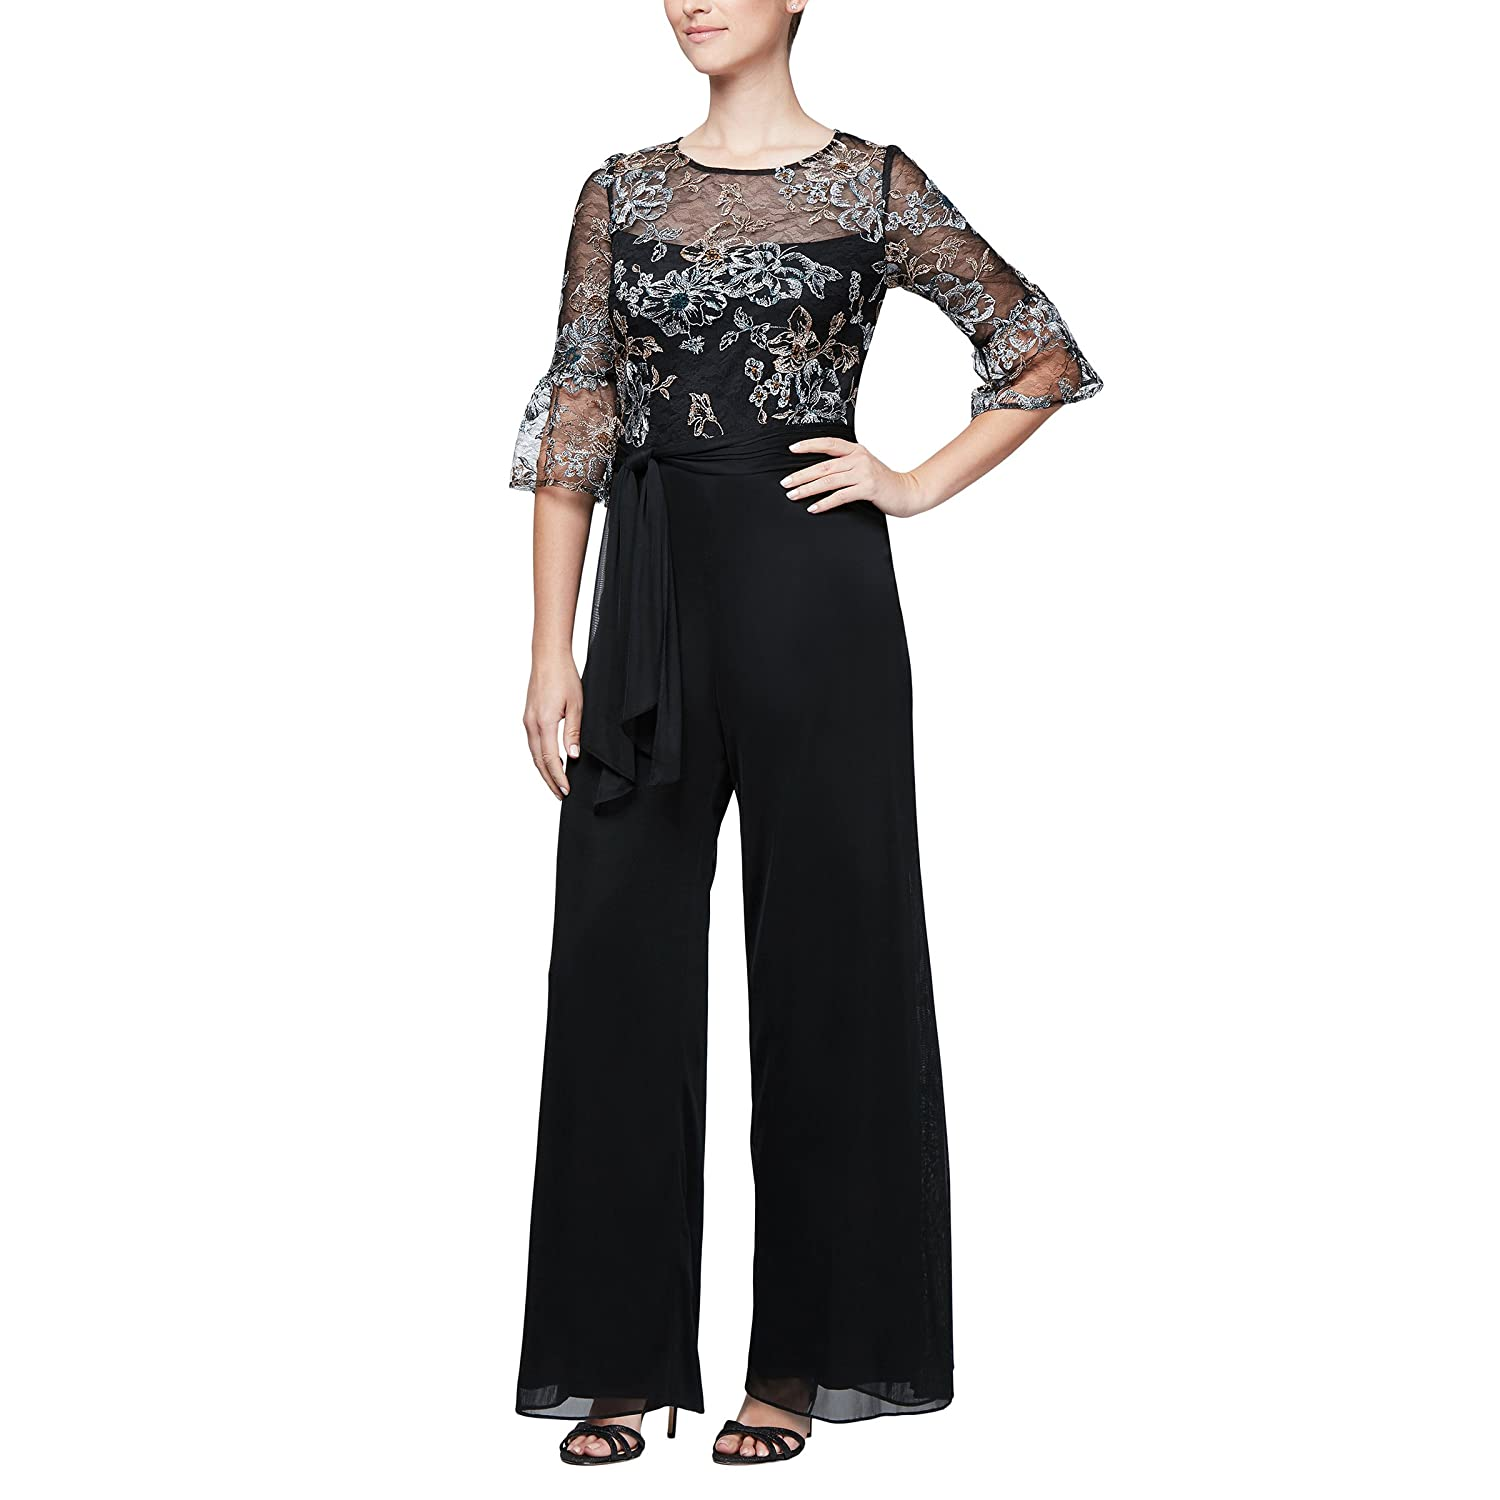 1920s Skirts, Gatsby Skirts, Vintage Pleated Skirts Alex Evenings Womens Embroidered Jumpsuit Illusion Bell Sleeves $229.00 AT vintagedancer.com